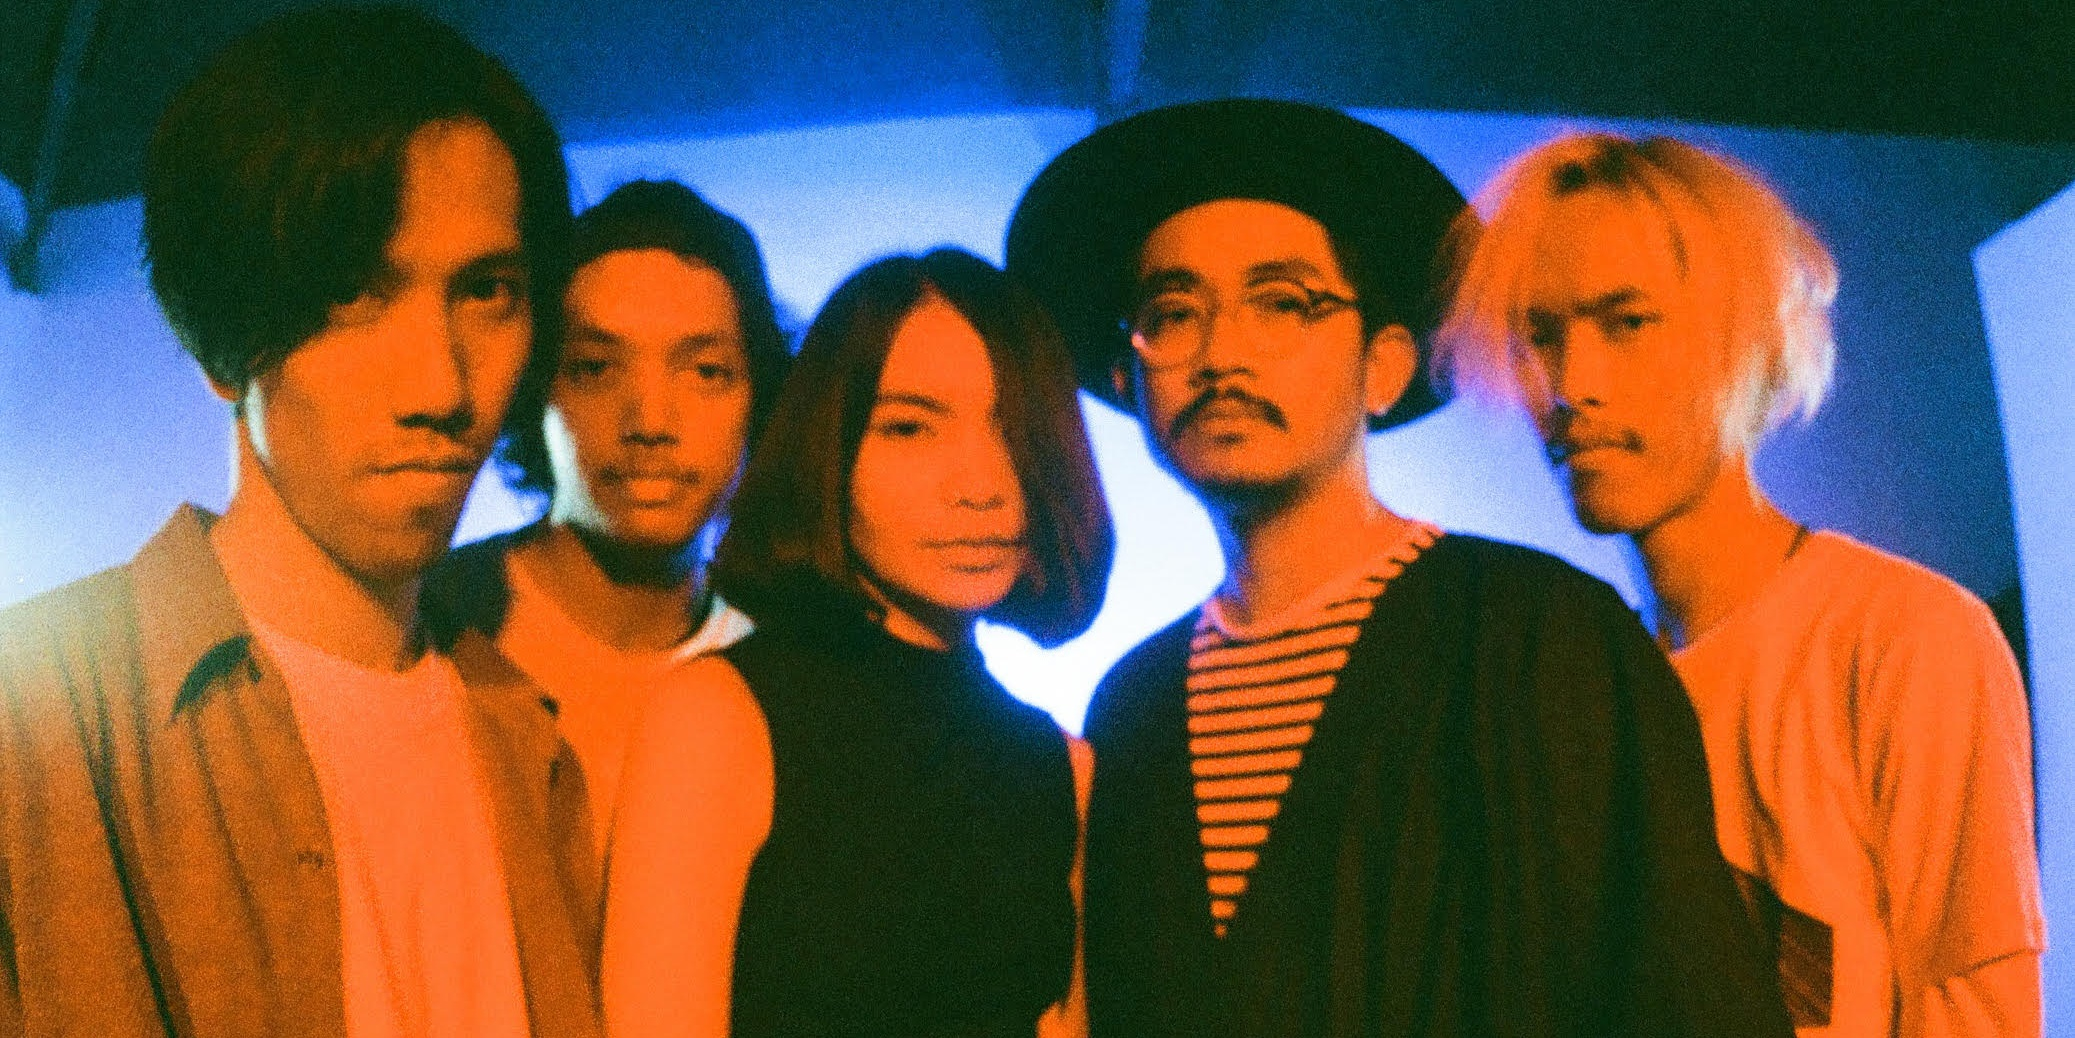 WATCH: Shoegaze band Heals release video for their latest single 'False Alarm'